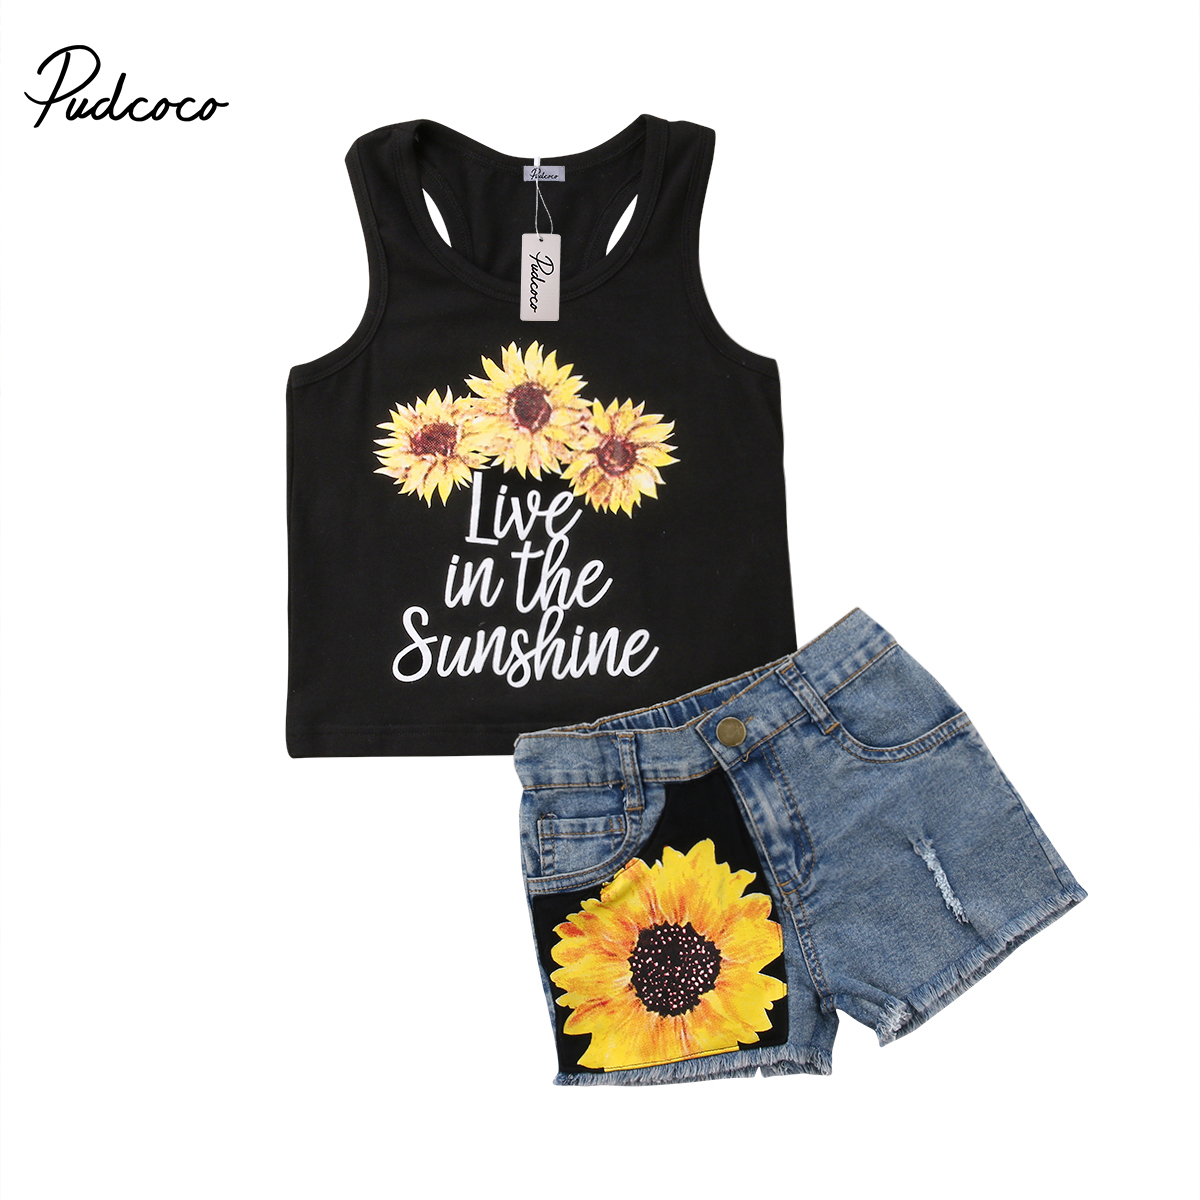 Pudcoco Baby Girl Kids Summer Toddler Outfits Sunflower T-shirt Tops+Denim Shorts 2PCS Clothes Set 2018 New 3pcs outfit infantil girls clothes toddler baby girl plaid ruffled tops kids girls denim shorts cute headband summer outfits set